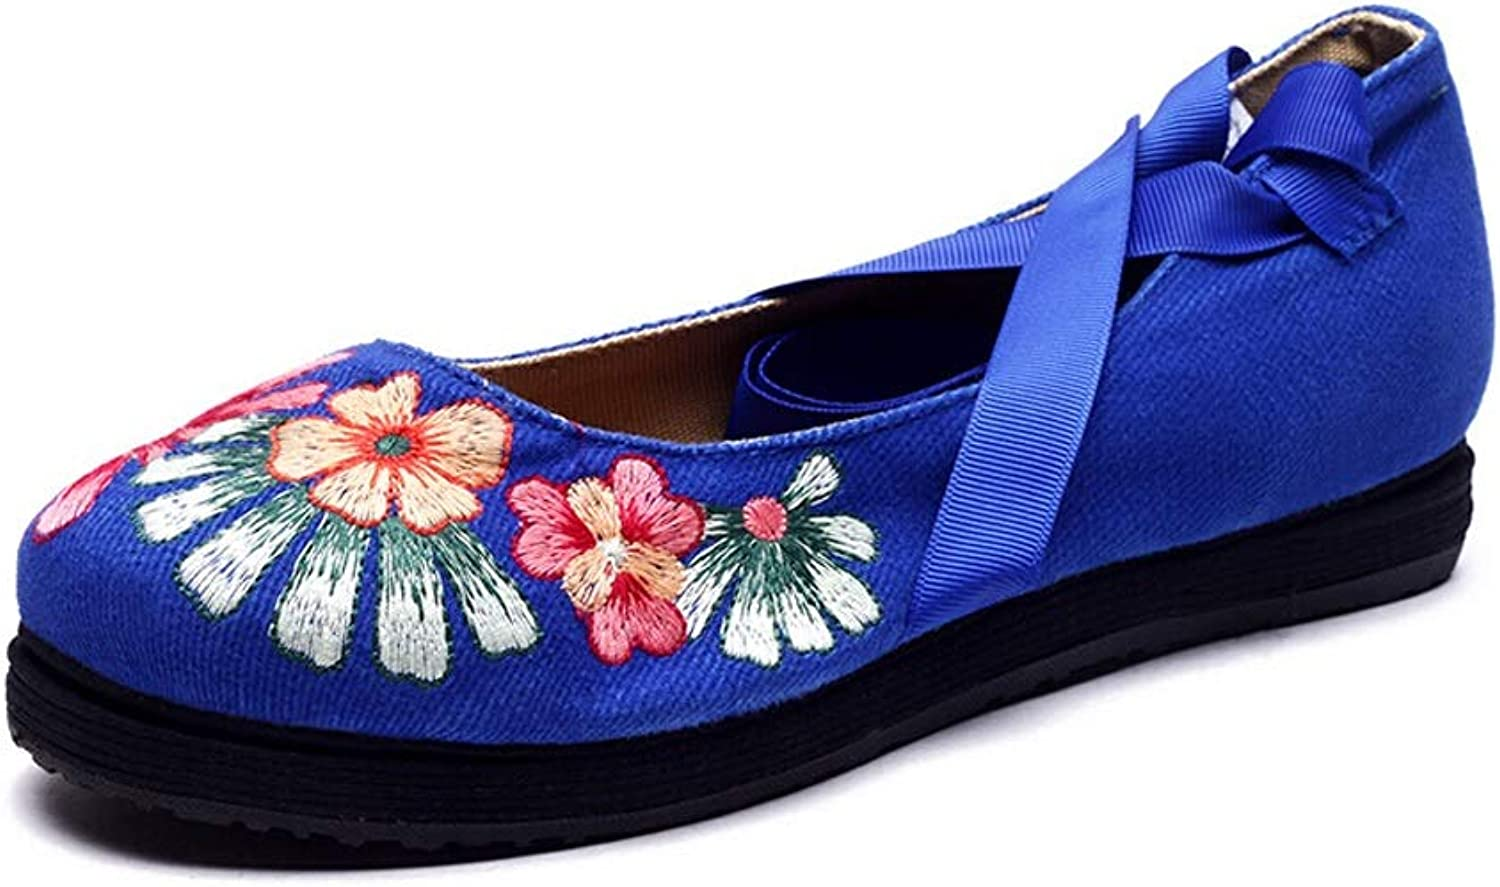 Summer National Wind shoes Women's Sense Belt with Layer of Embroidered shoes Soft and Comfortable Old Beijing Handmade shoes